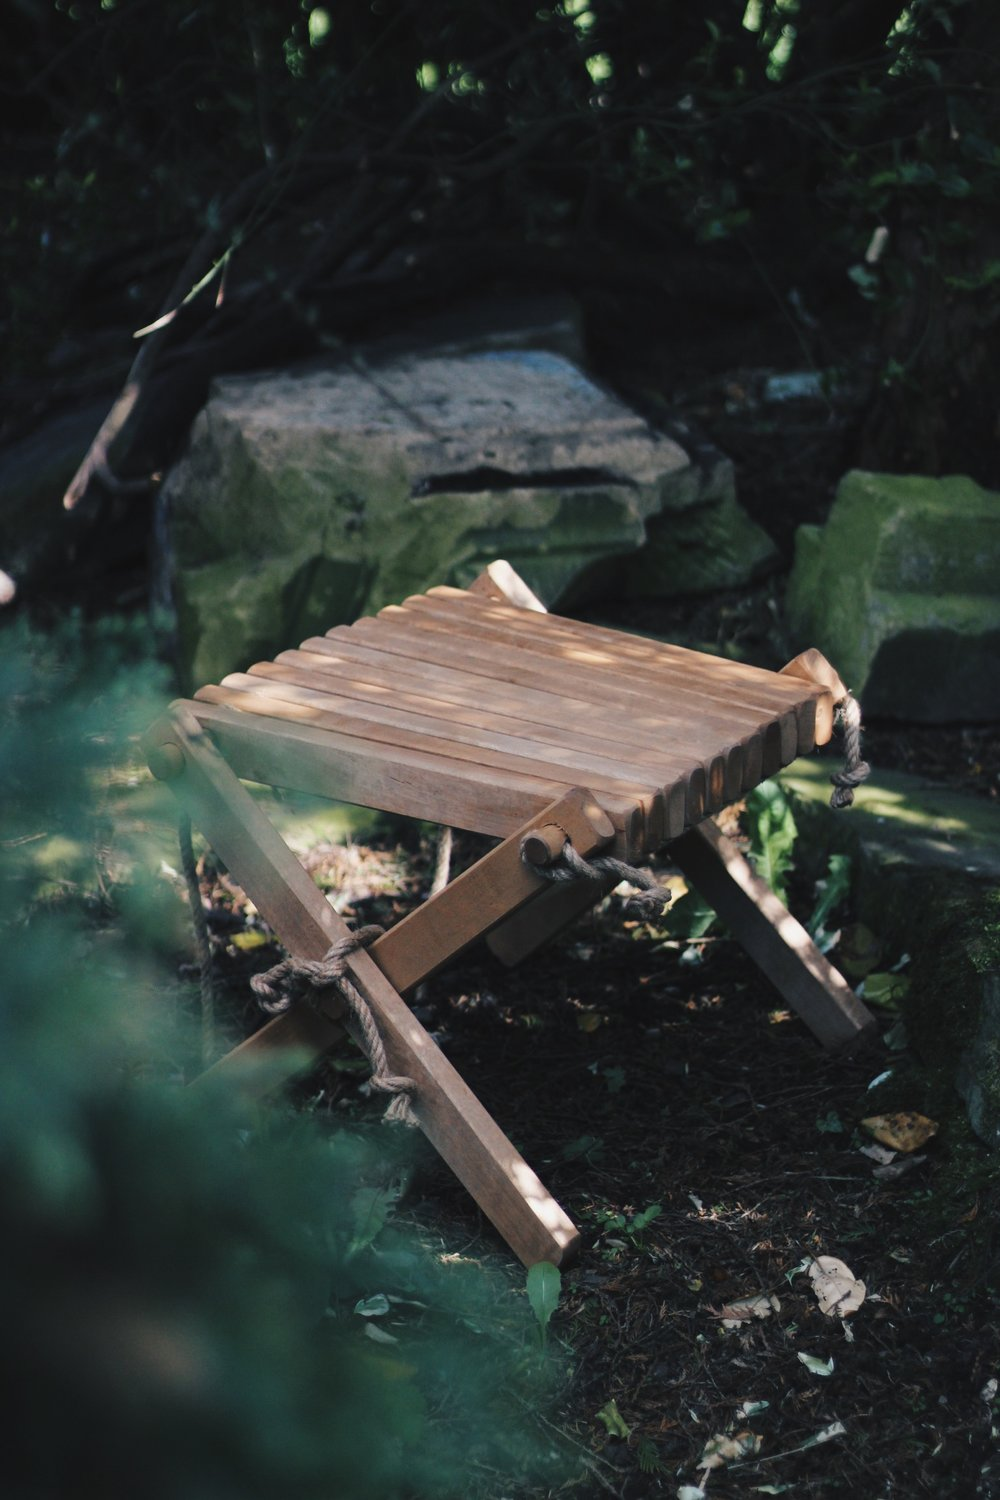 Wooden Stool in the Garden